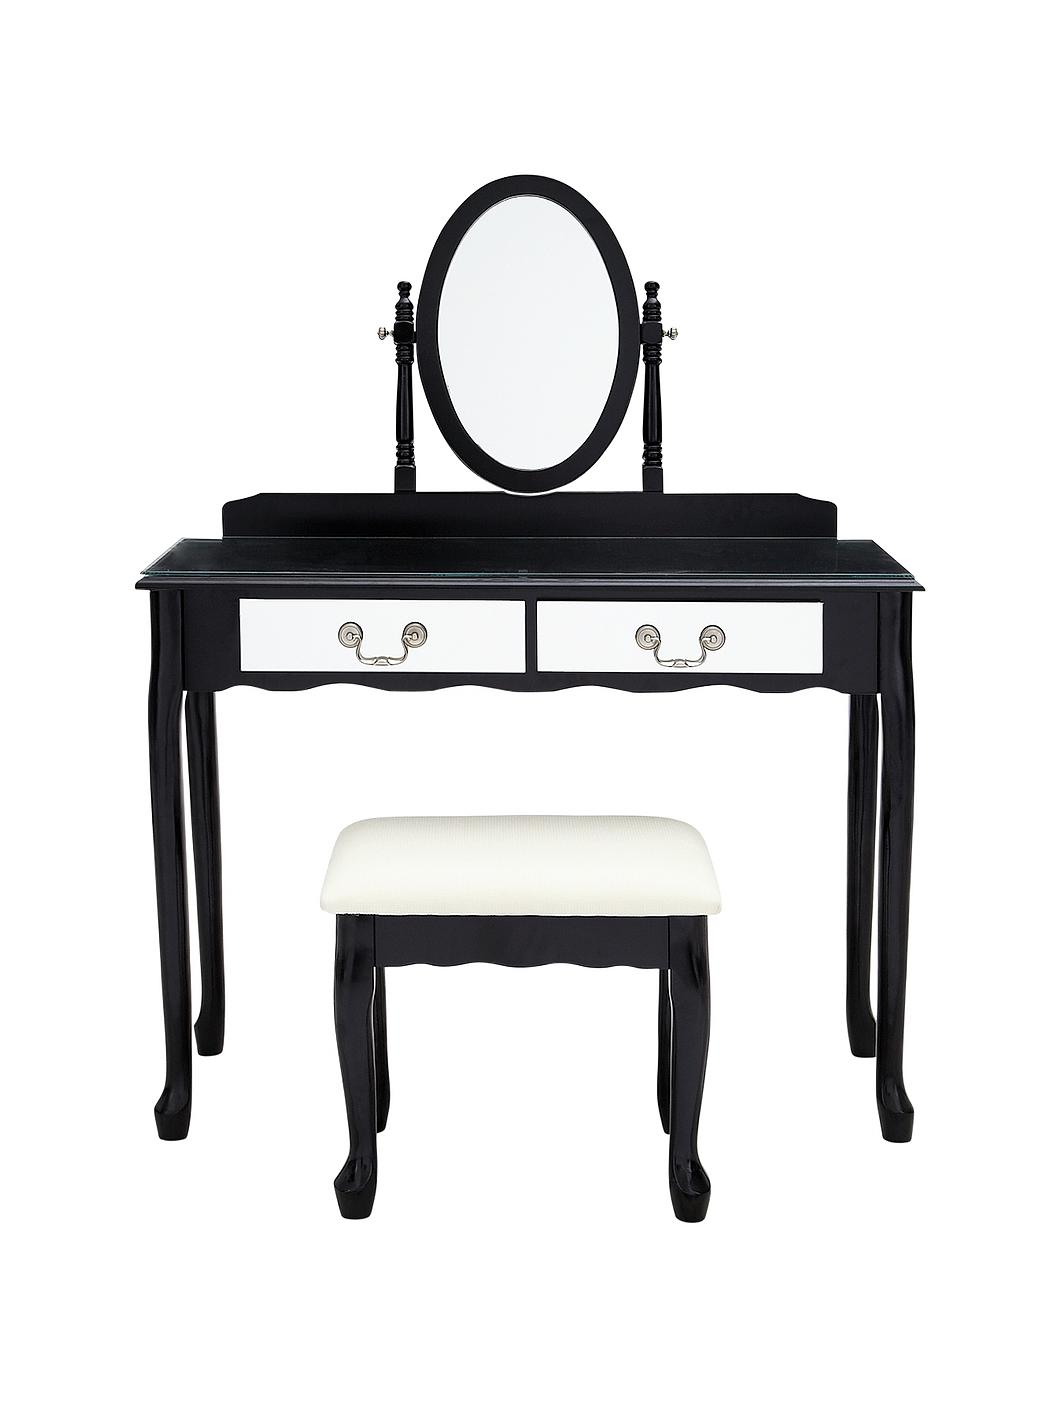 Mirrored Vanity Table And Stool: Elysee Mirrored Front Dressing Table And Stool